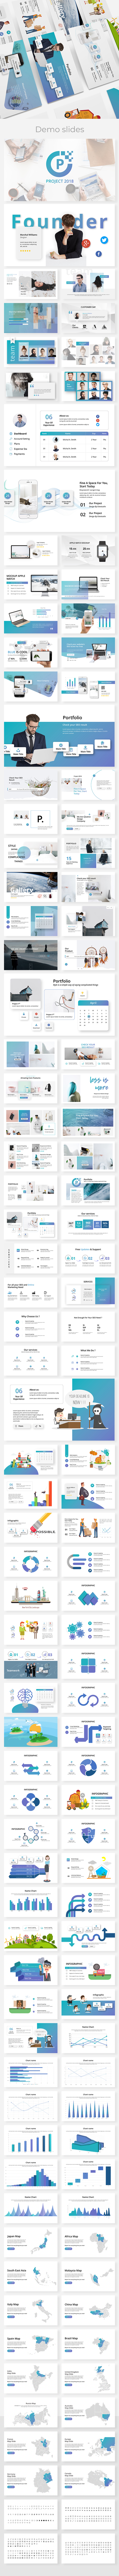 Project 2018 - Business Powerpoint Template - Business PowerPoint Templates